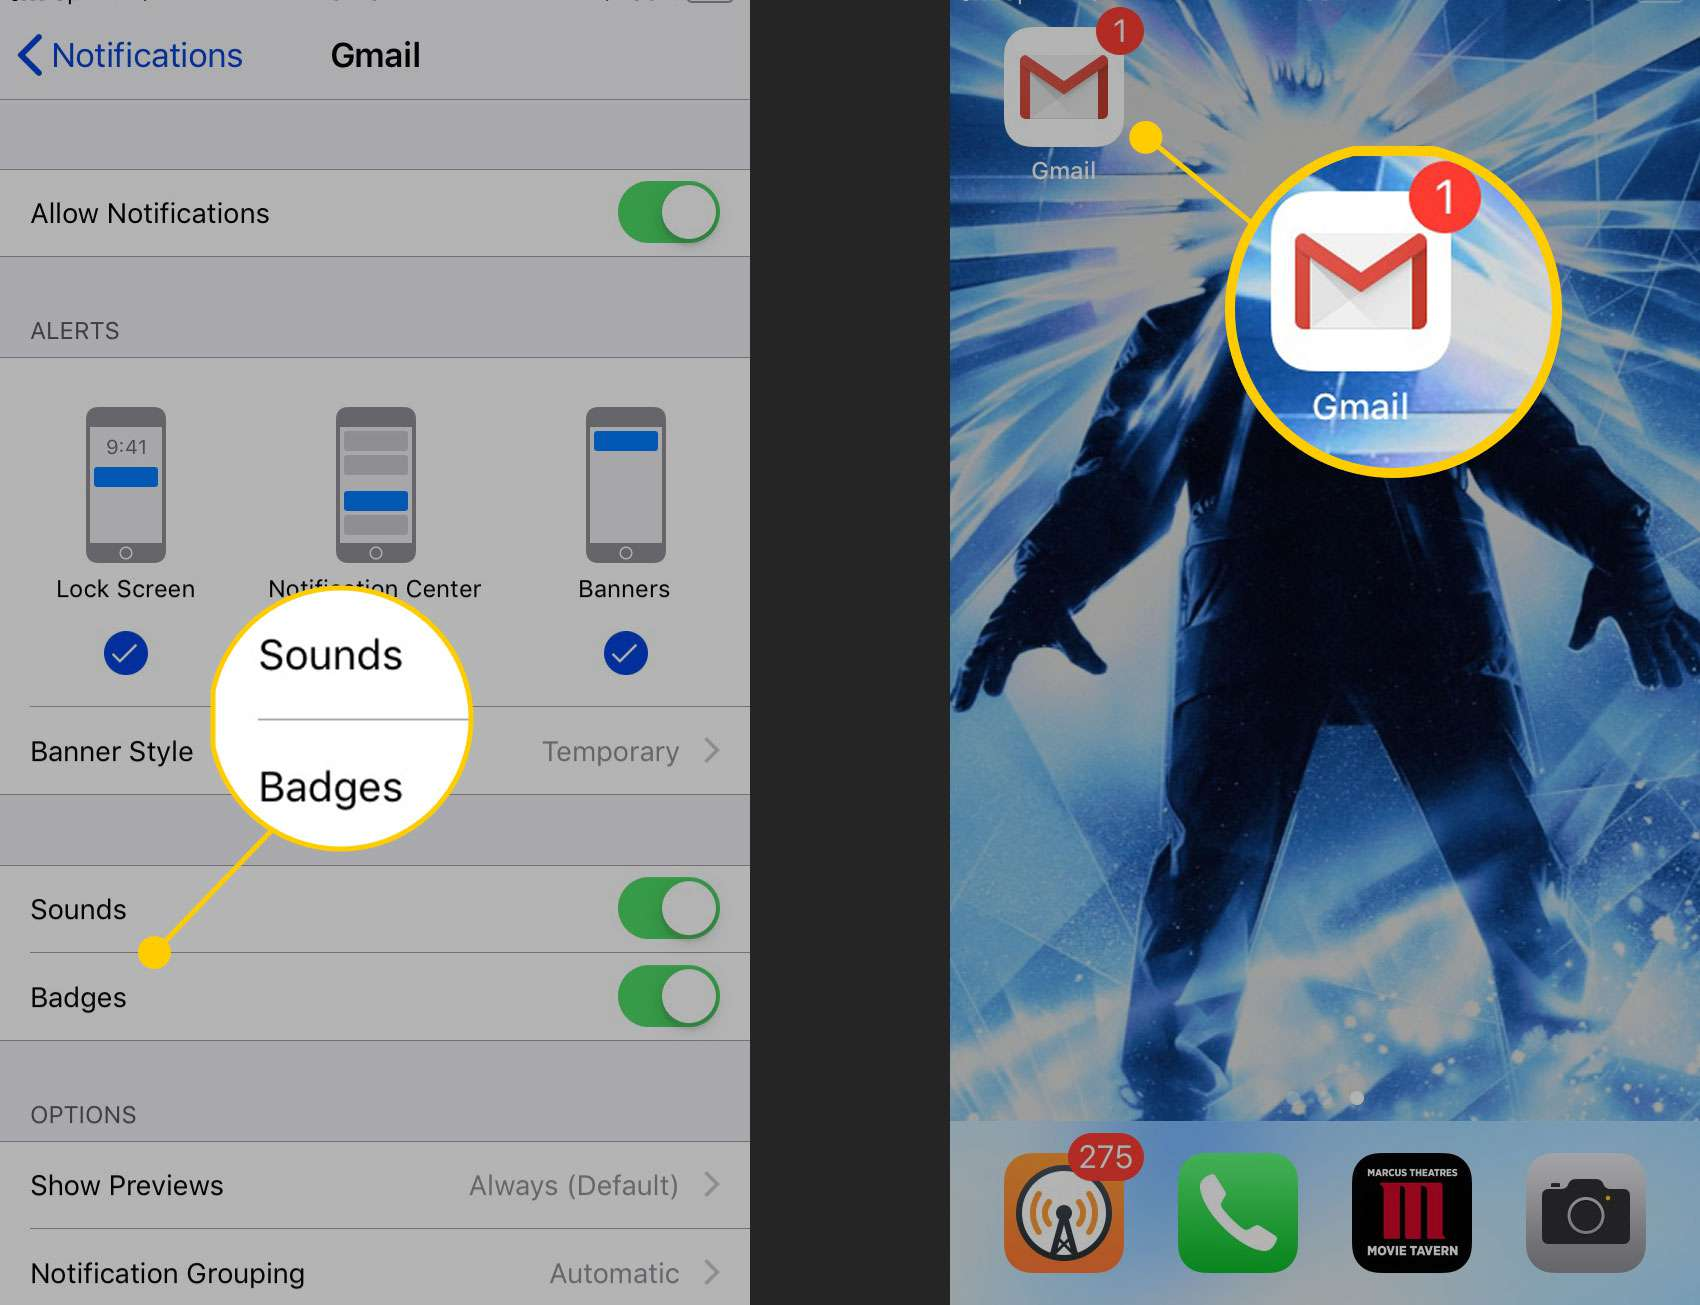 See New Gmail Messages in iOS Notification Center